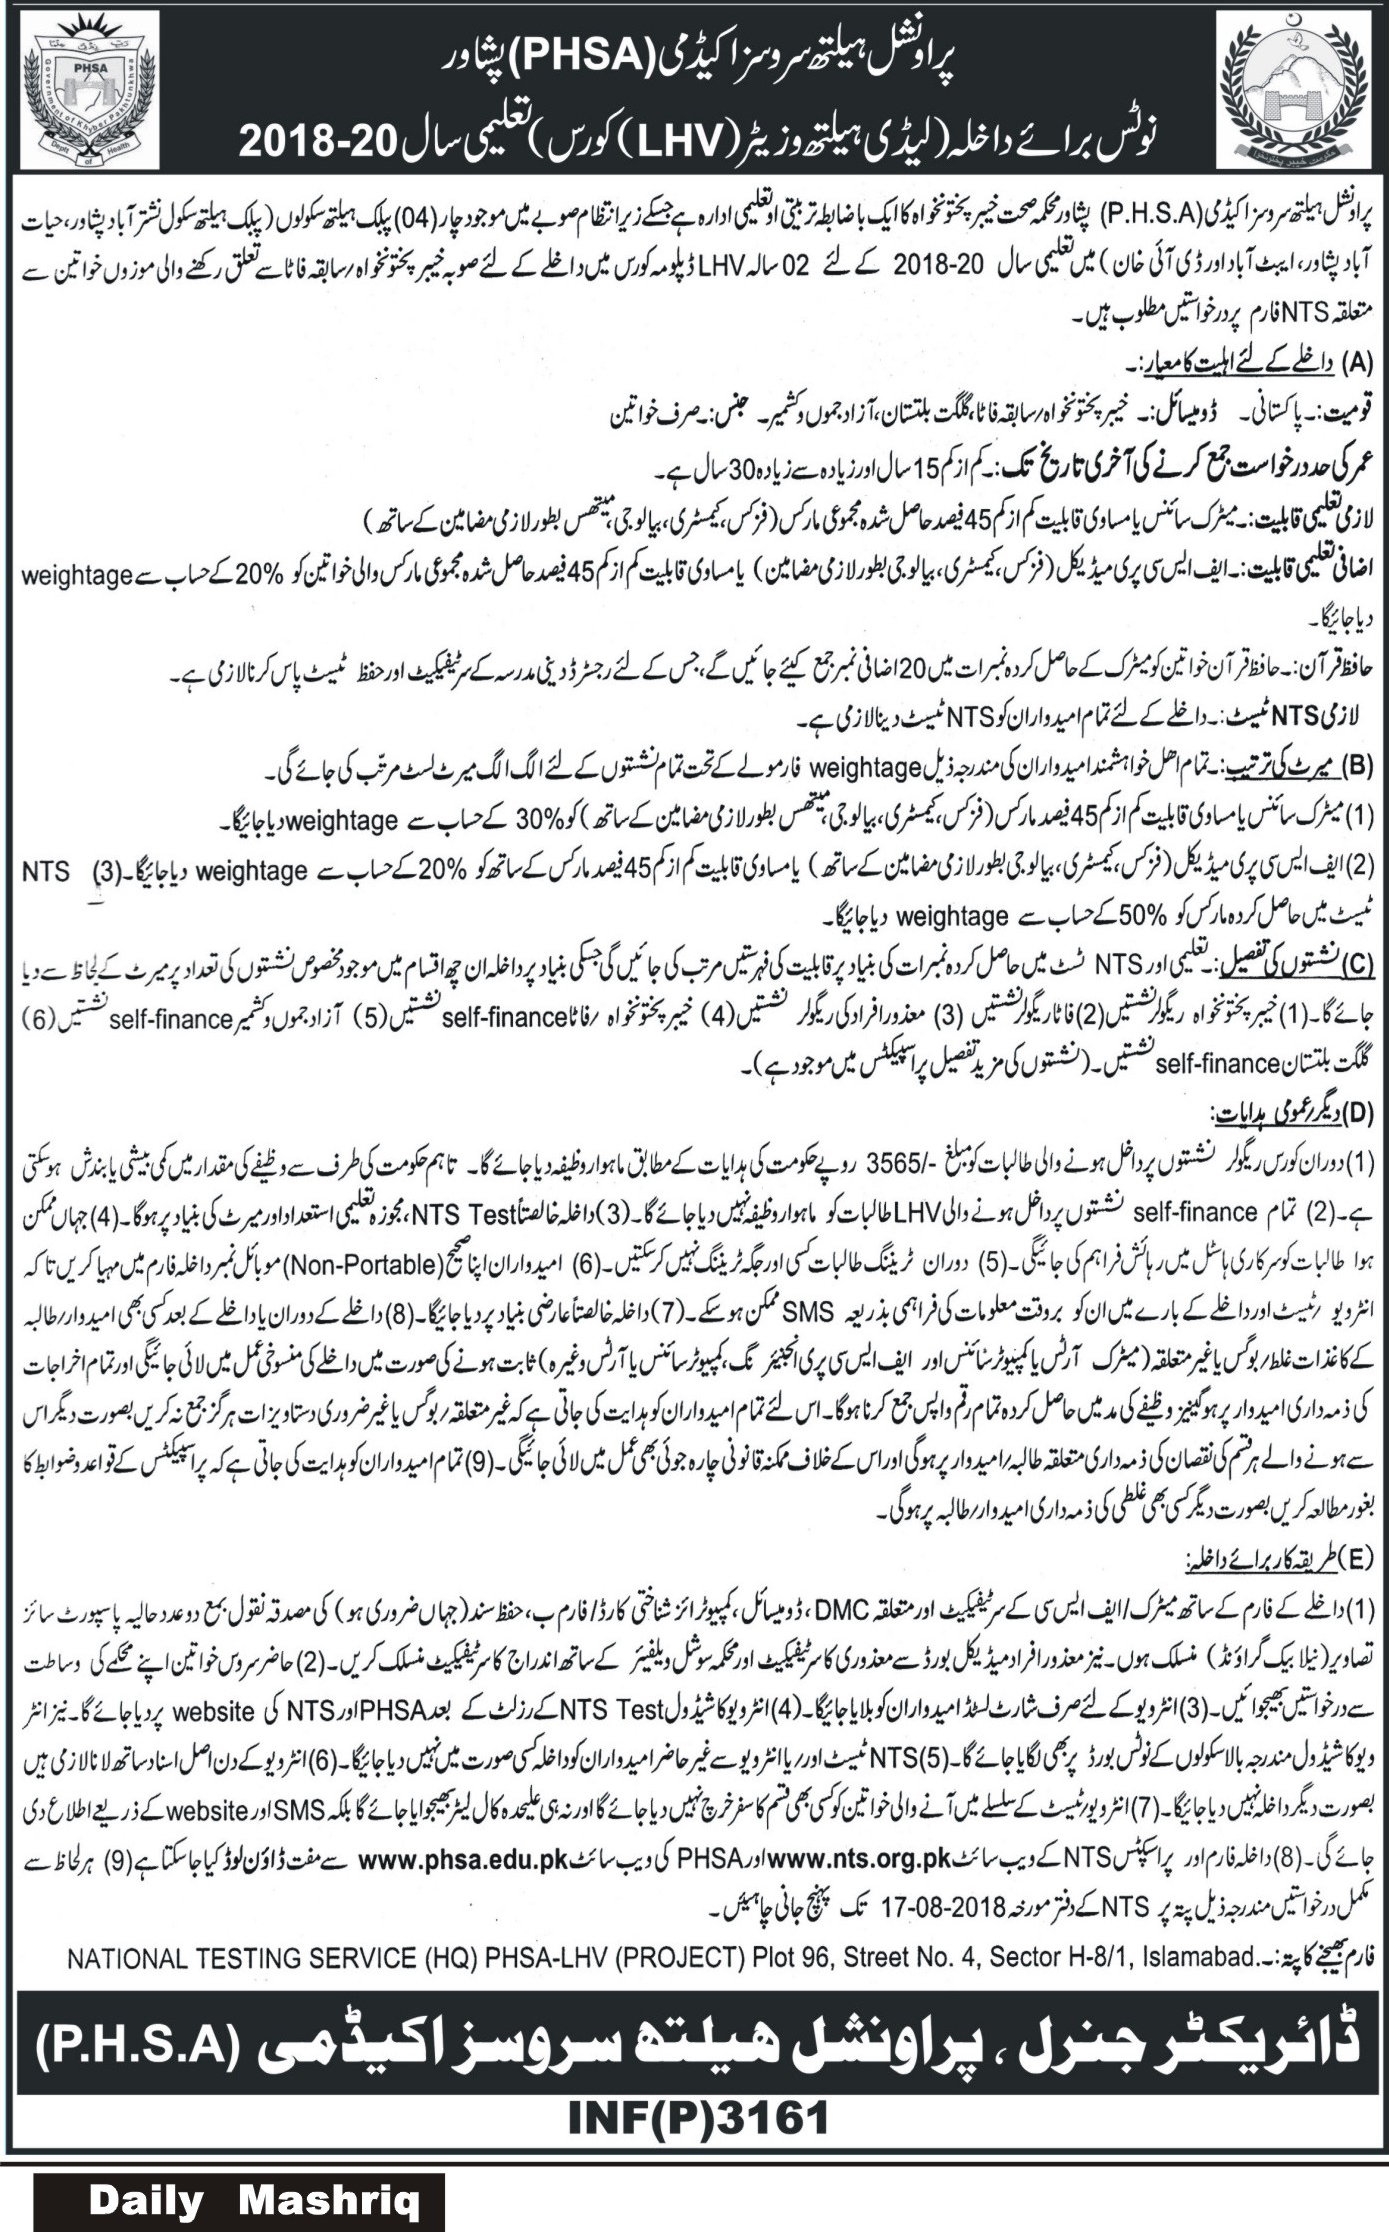 Provincial Health Services Academy Peshawar Lady Health Visitor Course NTS Roll Number Slips 2018